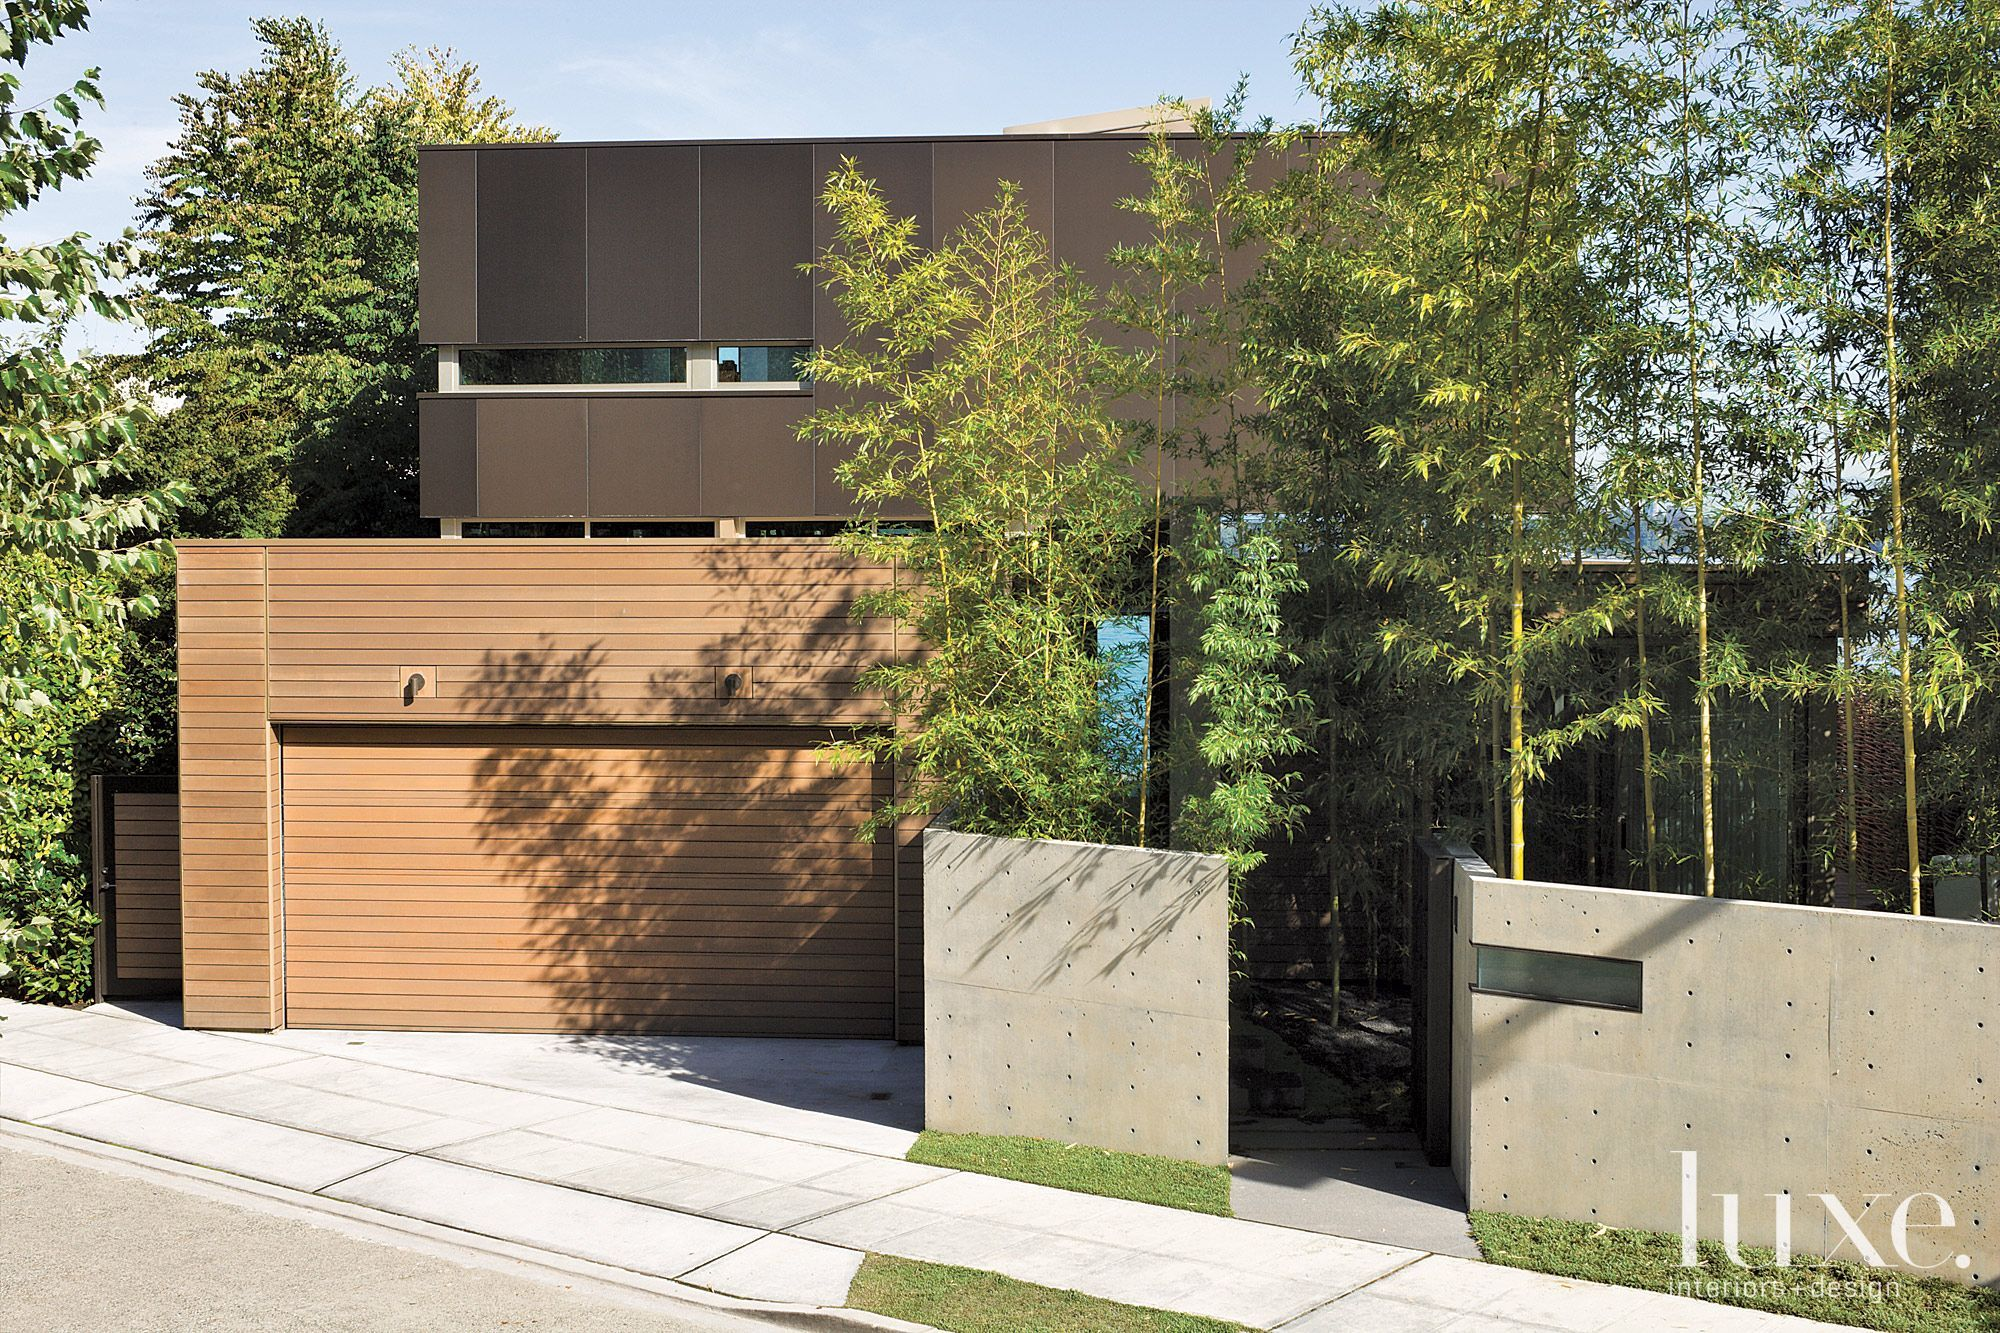 Stained Clear Cedar And Firestone Metal Panels Intermingle With  Architectural Concrete To Form The Sophisticated Mix Of Materials On The  Exterior Of This ...